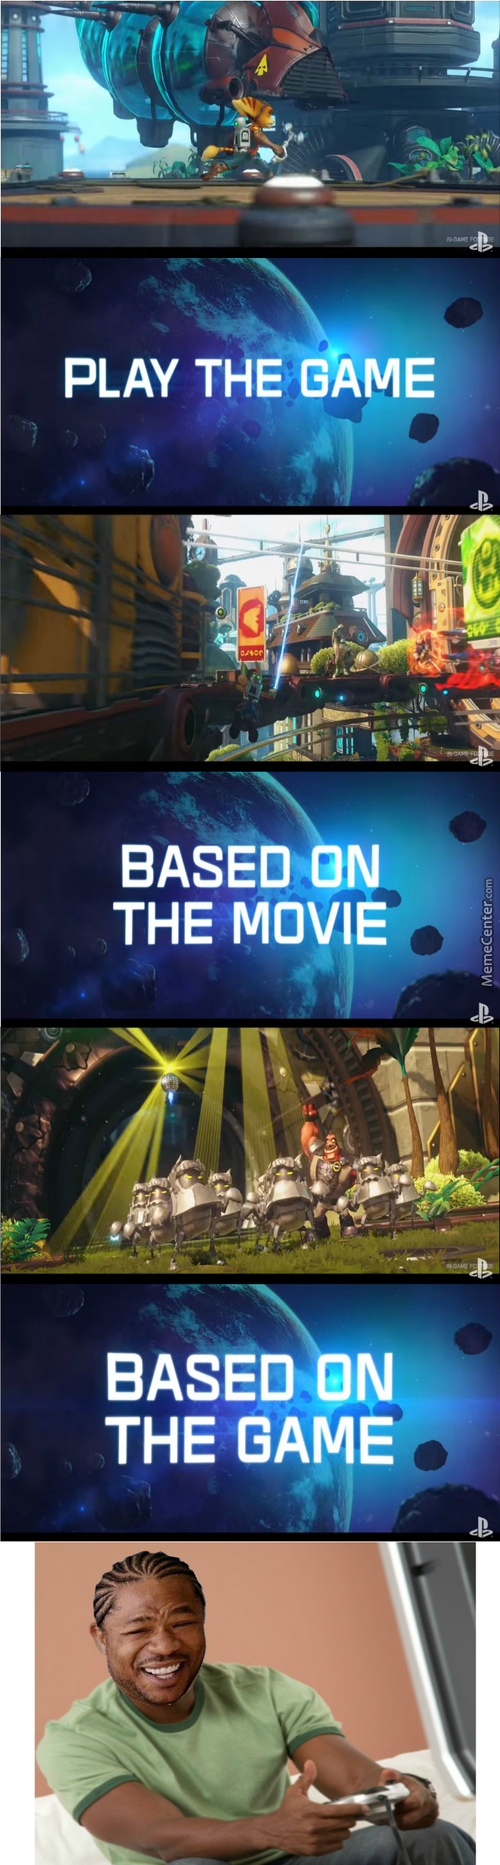 Can't Wait To Watch The Movie Based On The Game Based On The Movie Based On The Game As Well (Ratchet And Clank Movie Game)